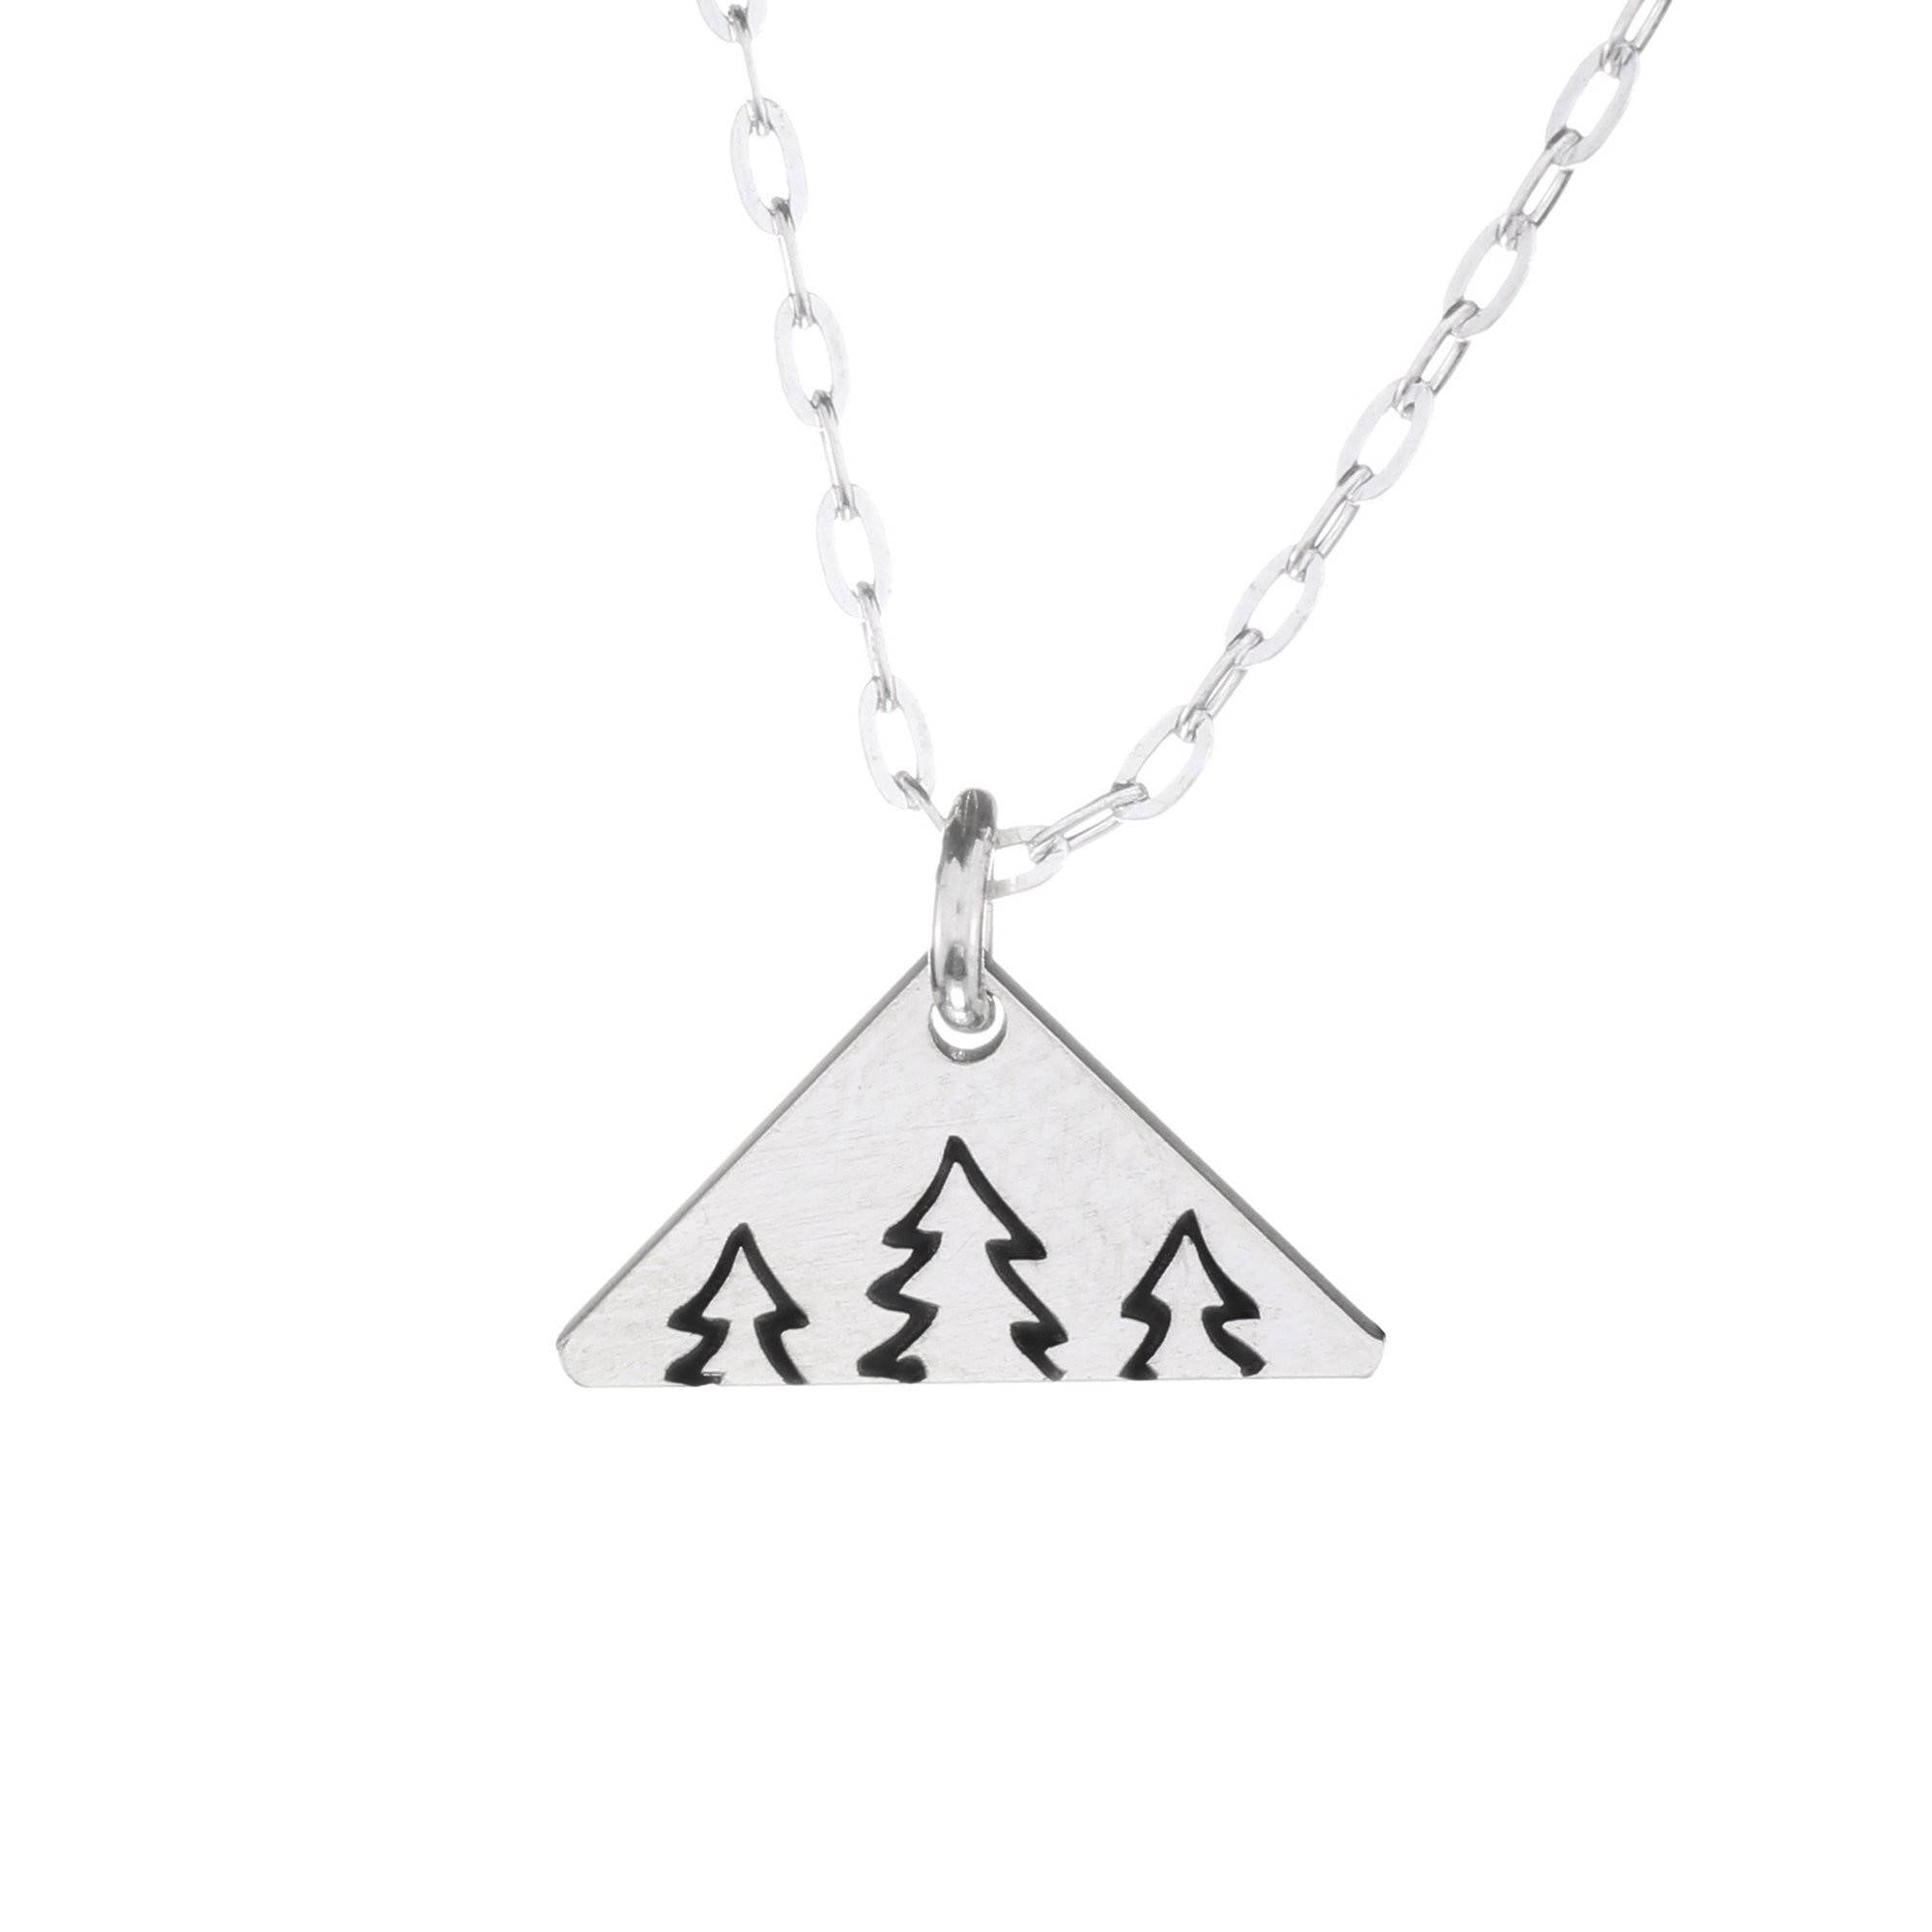 Serene Trees Mini Necklace